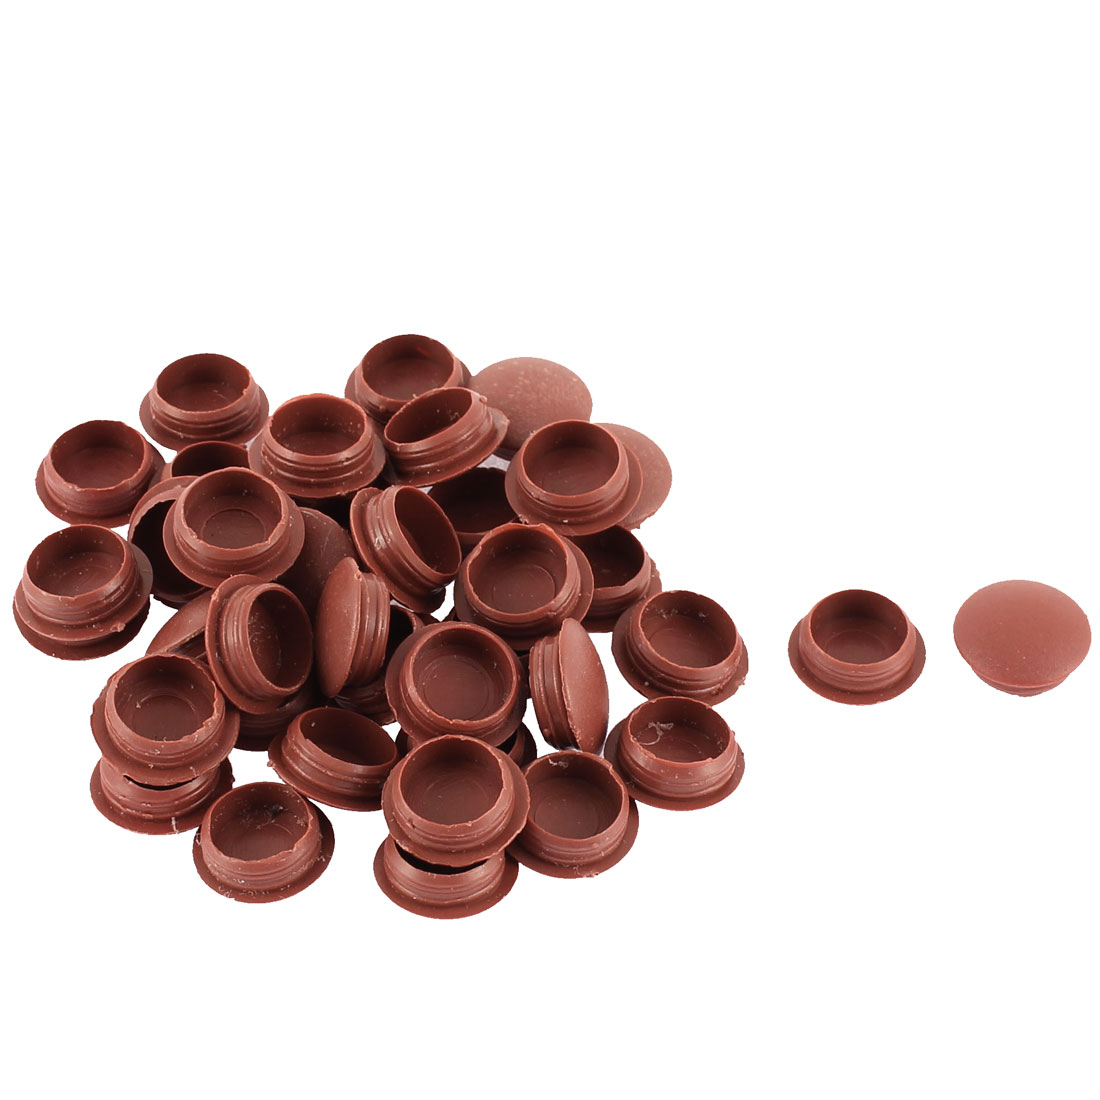 Home Plastic Furniture Pipe End Hole Cover Tube Insert Burgundy 12mm Dia 40pcs